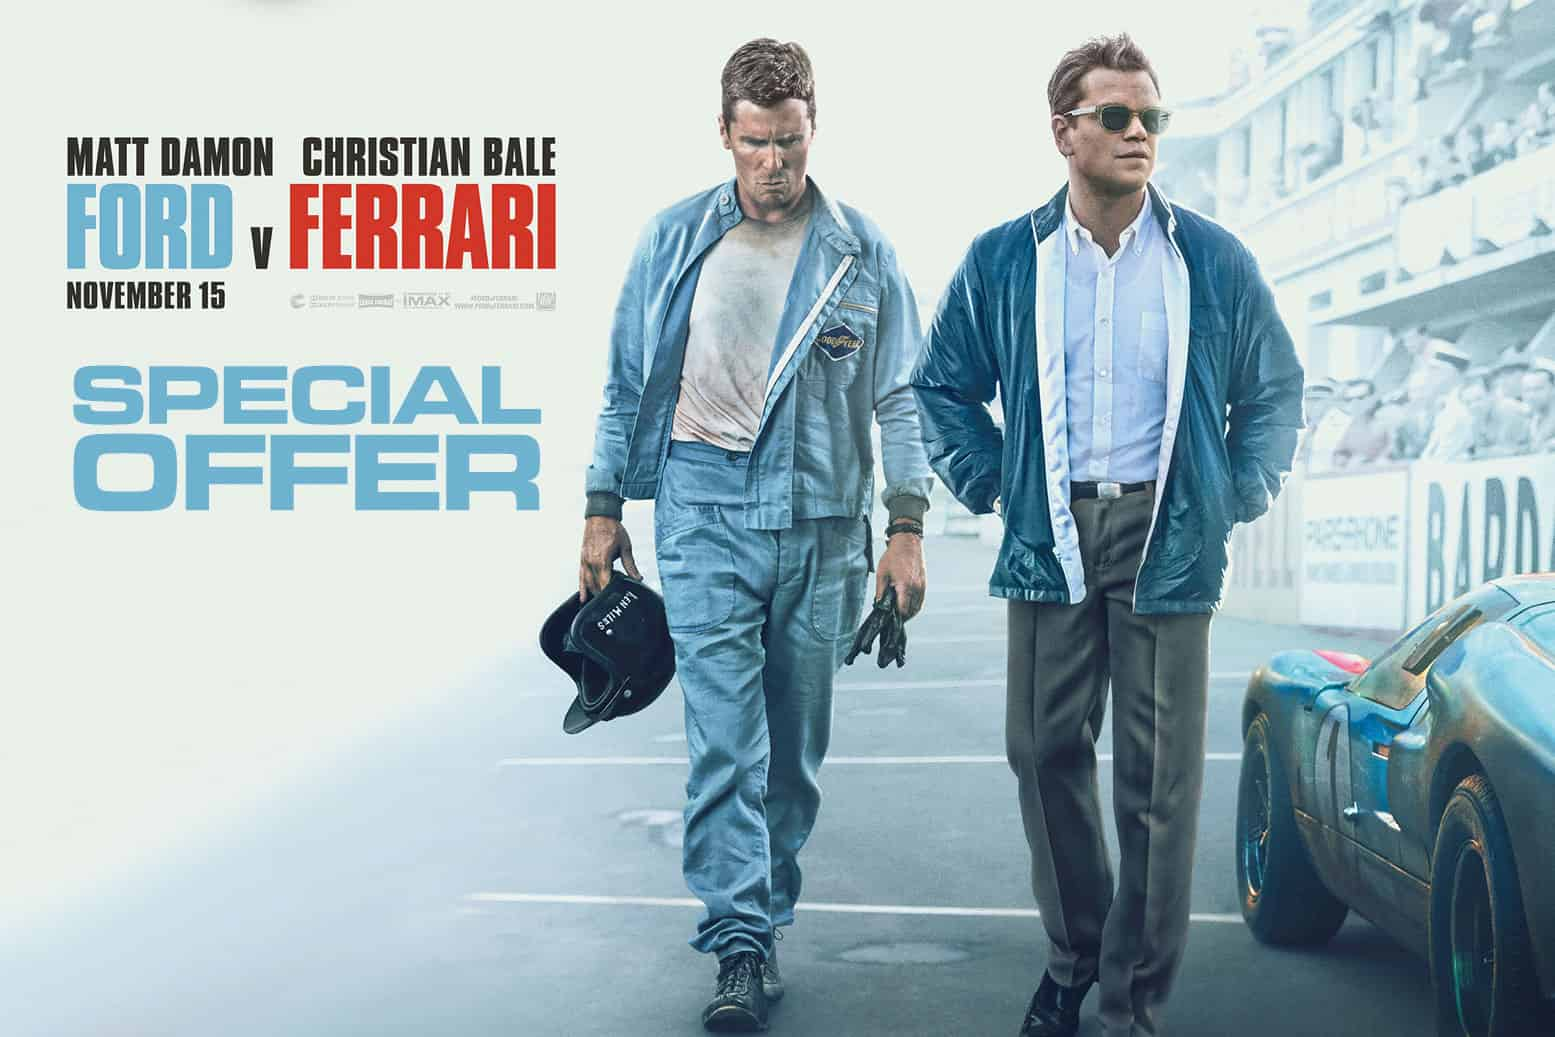 Show Your Ford v Ferrari Ticket for a Race Discount!